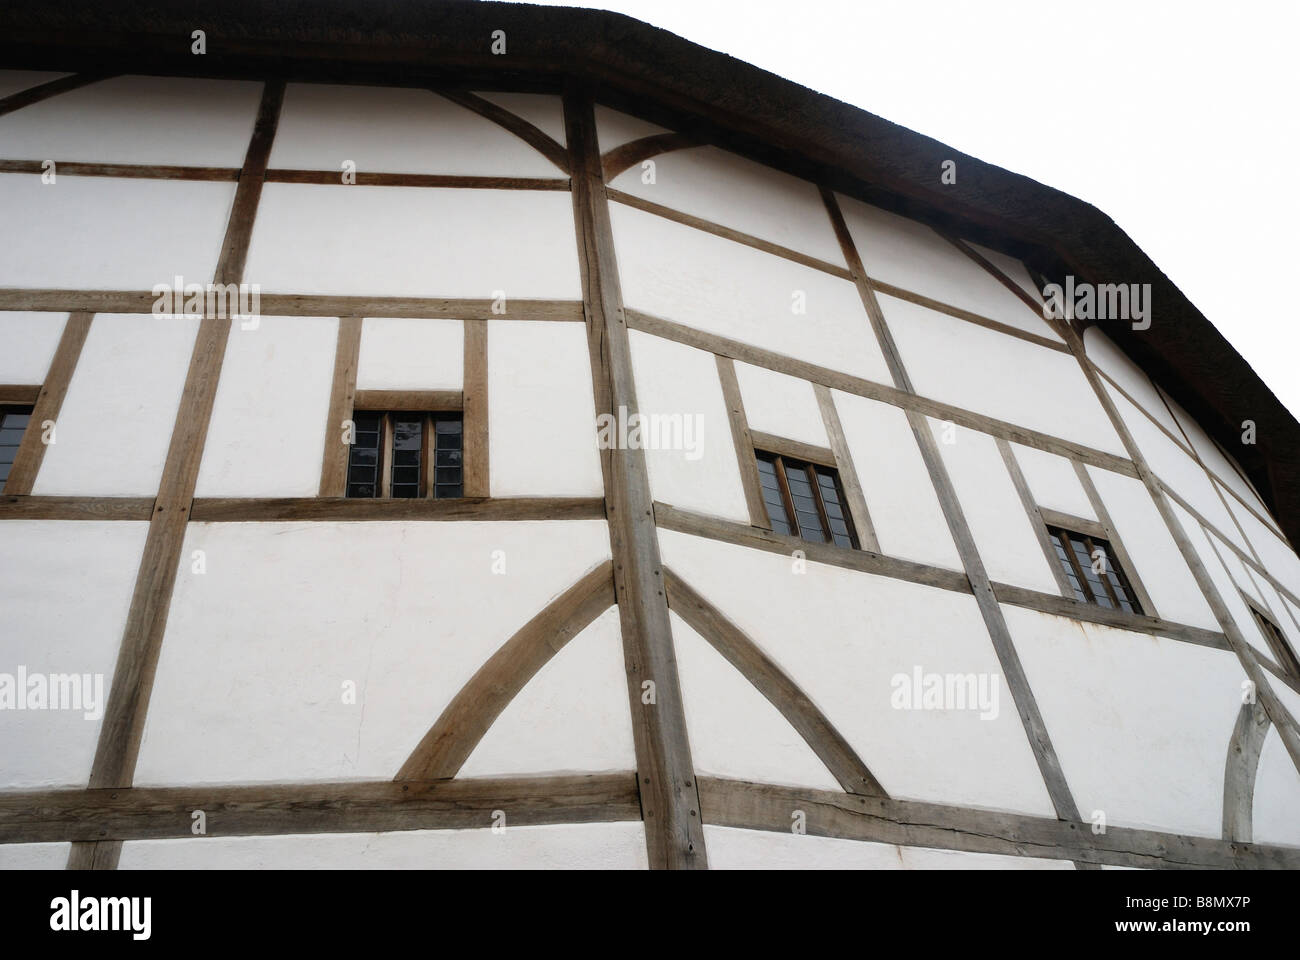 The Globe theatre in the City of London - Stock Image